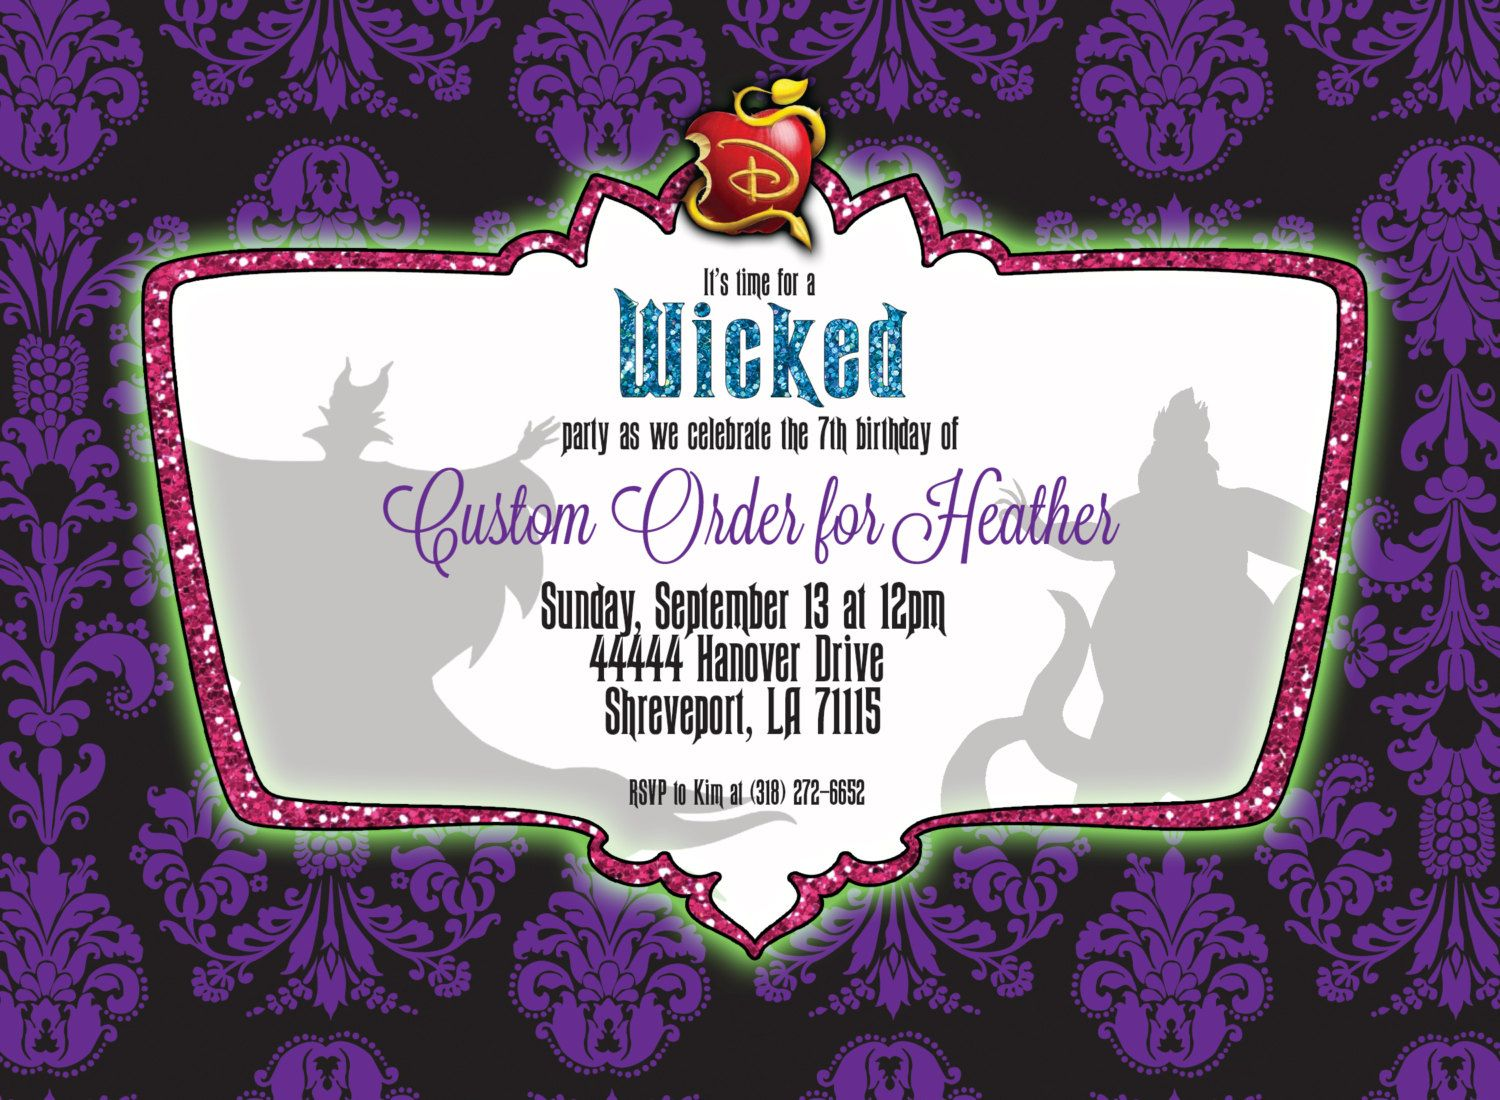 Custom Disney Descendants Invitation for Heather by PaperCannonDesigns on Etsy